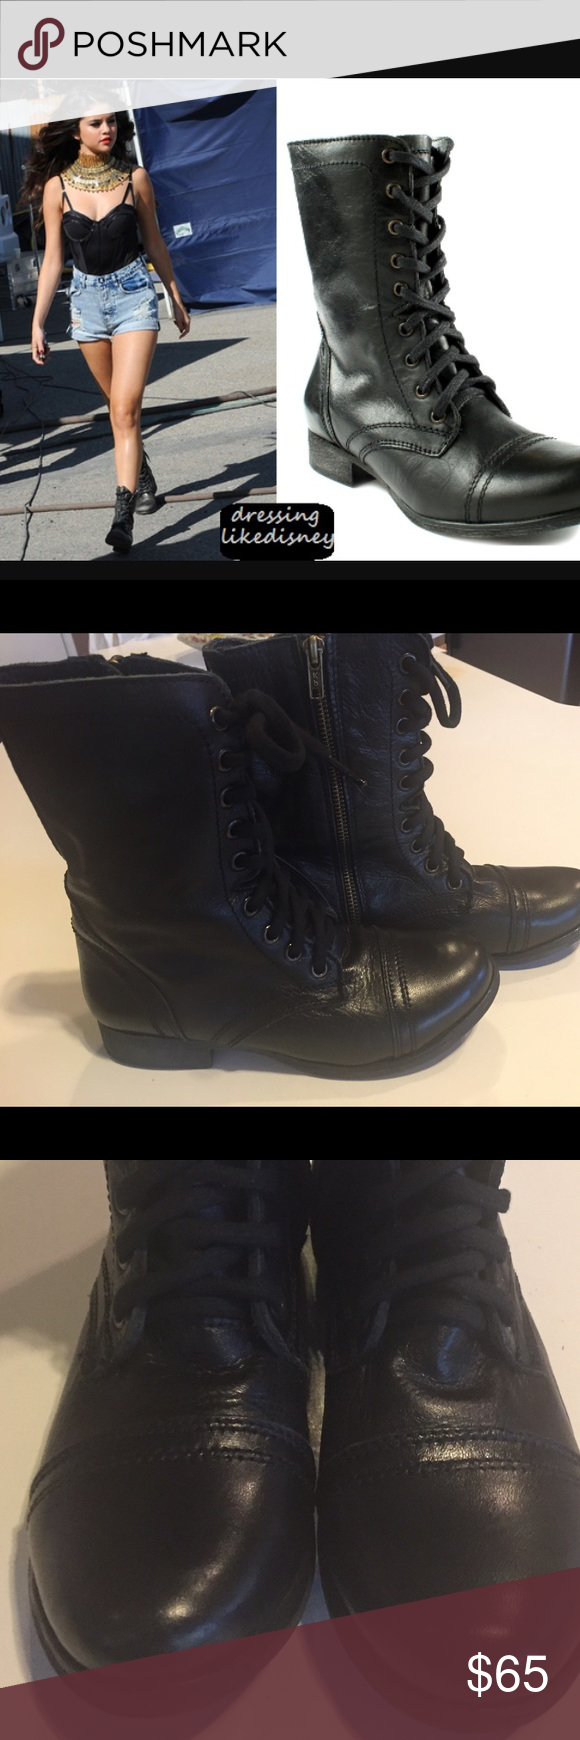 "New Steve Madden ""Troopa"" Boots Black Size 5.5 Steve Madden ""Troopa"" Boots Black Size 5.5.  New and never worn! So cute! Steve Madden Shoes Ankle Boots & Booties"